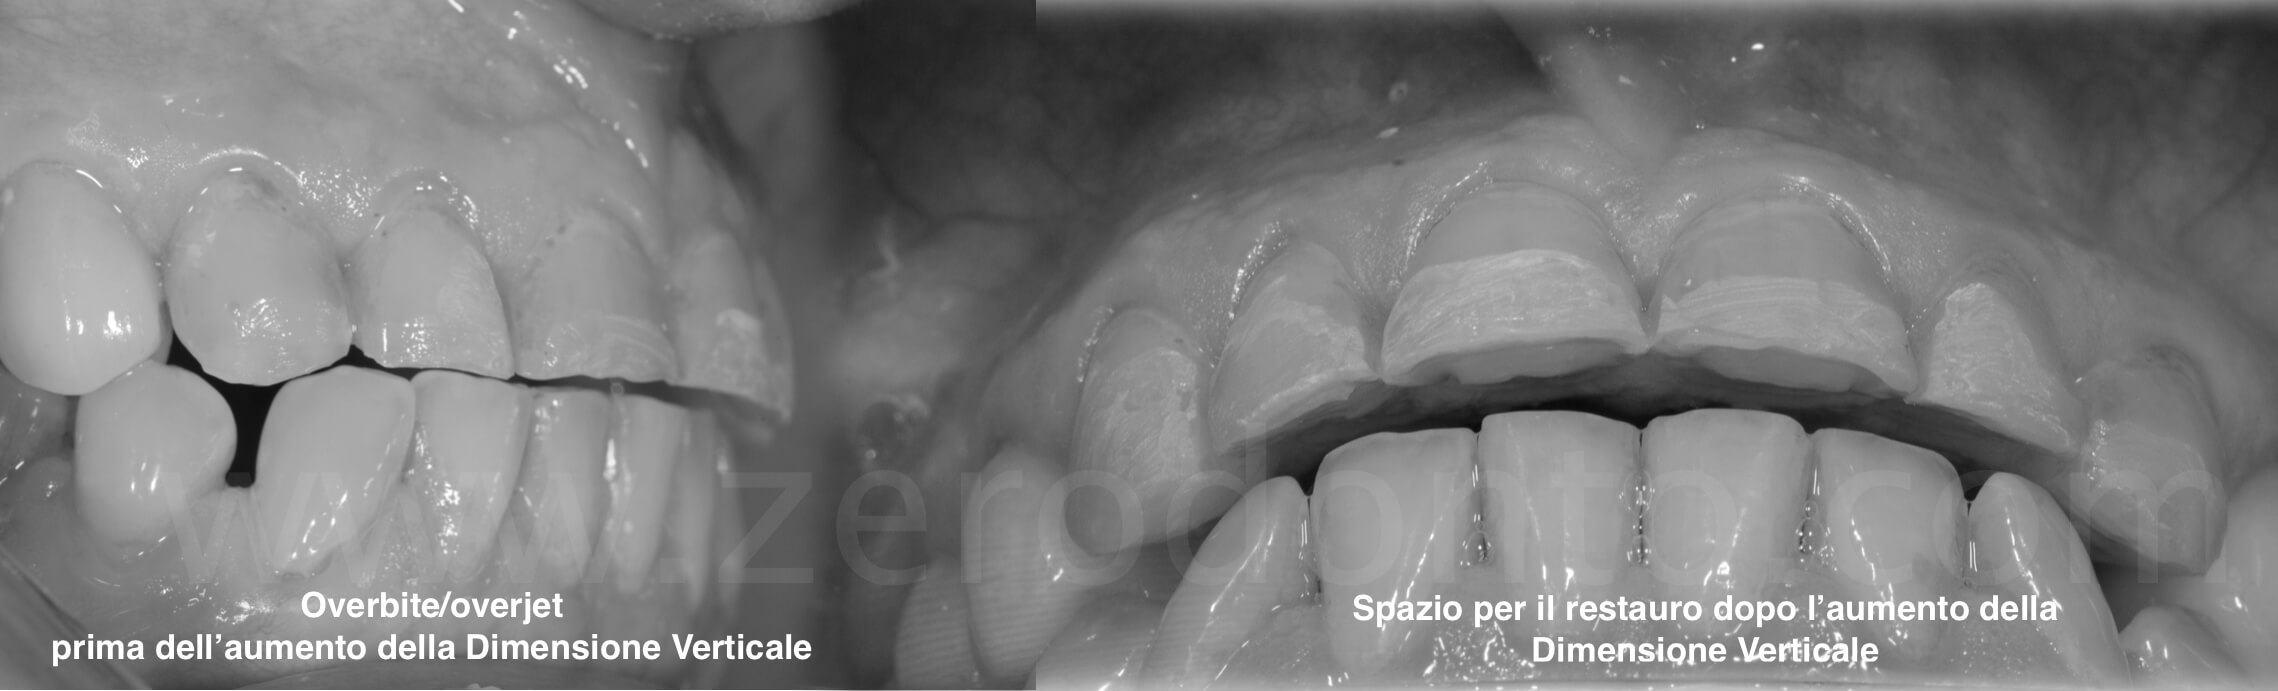 overbite overjet vertical dimension